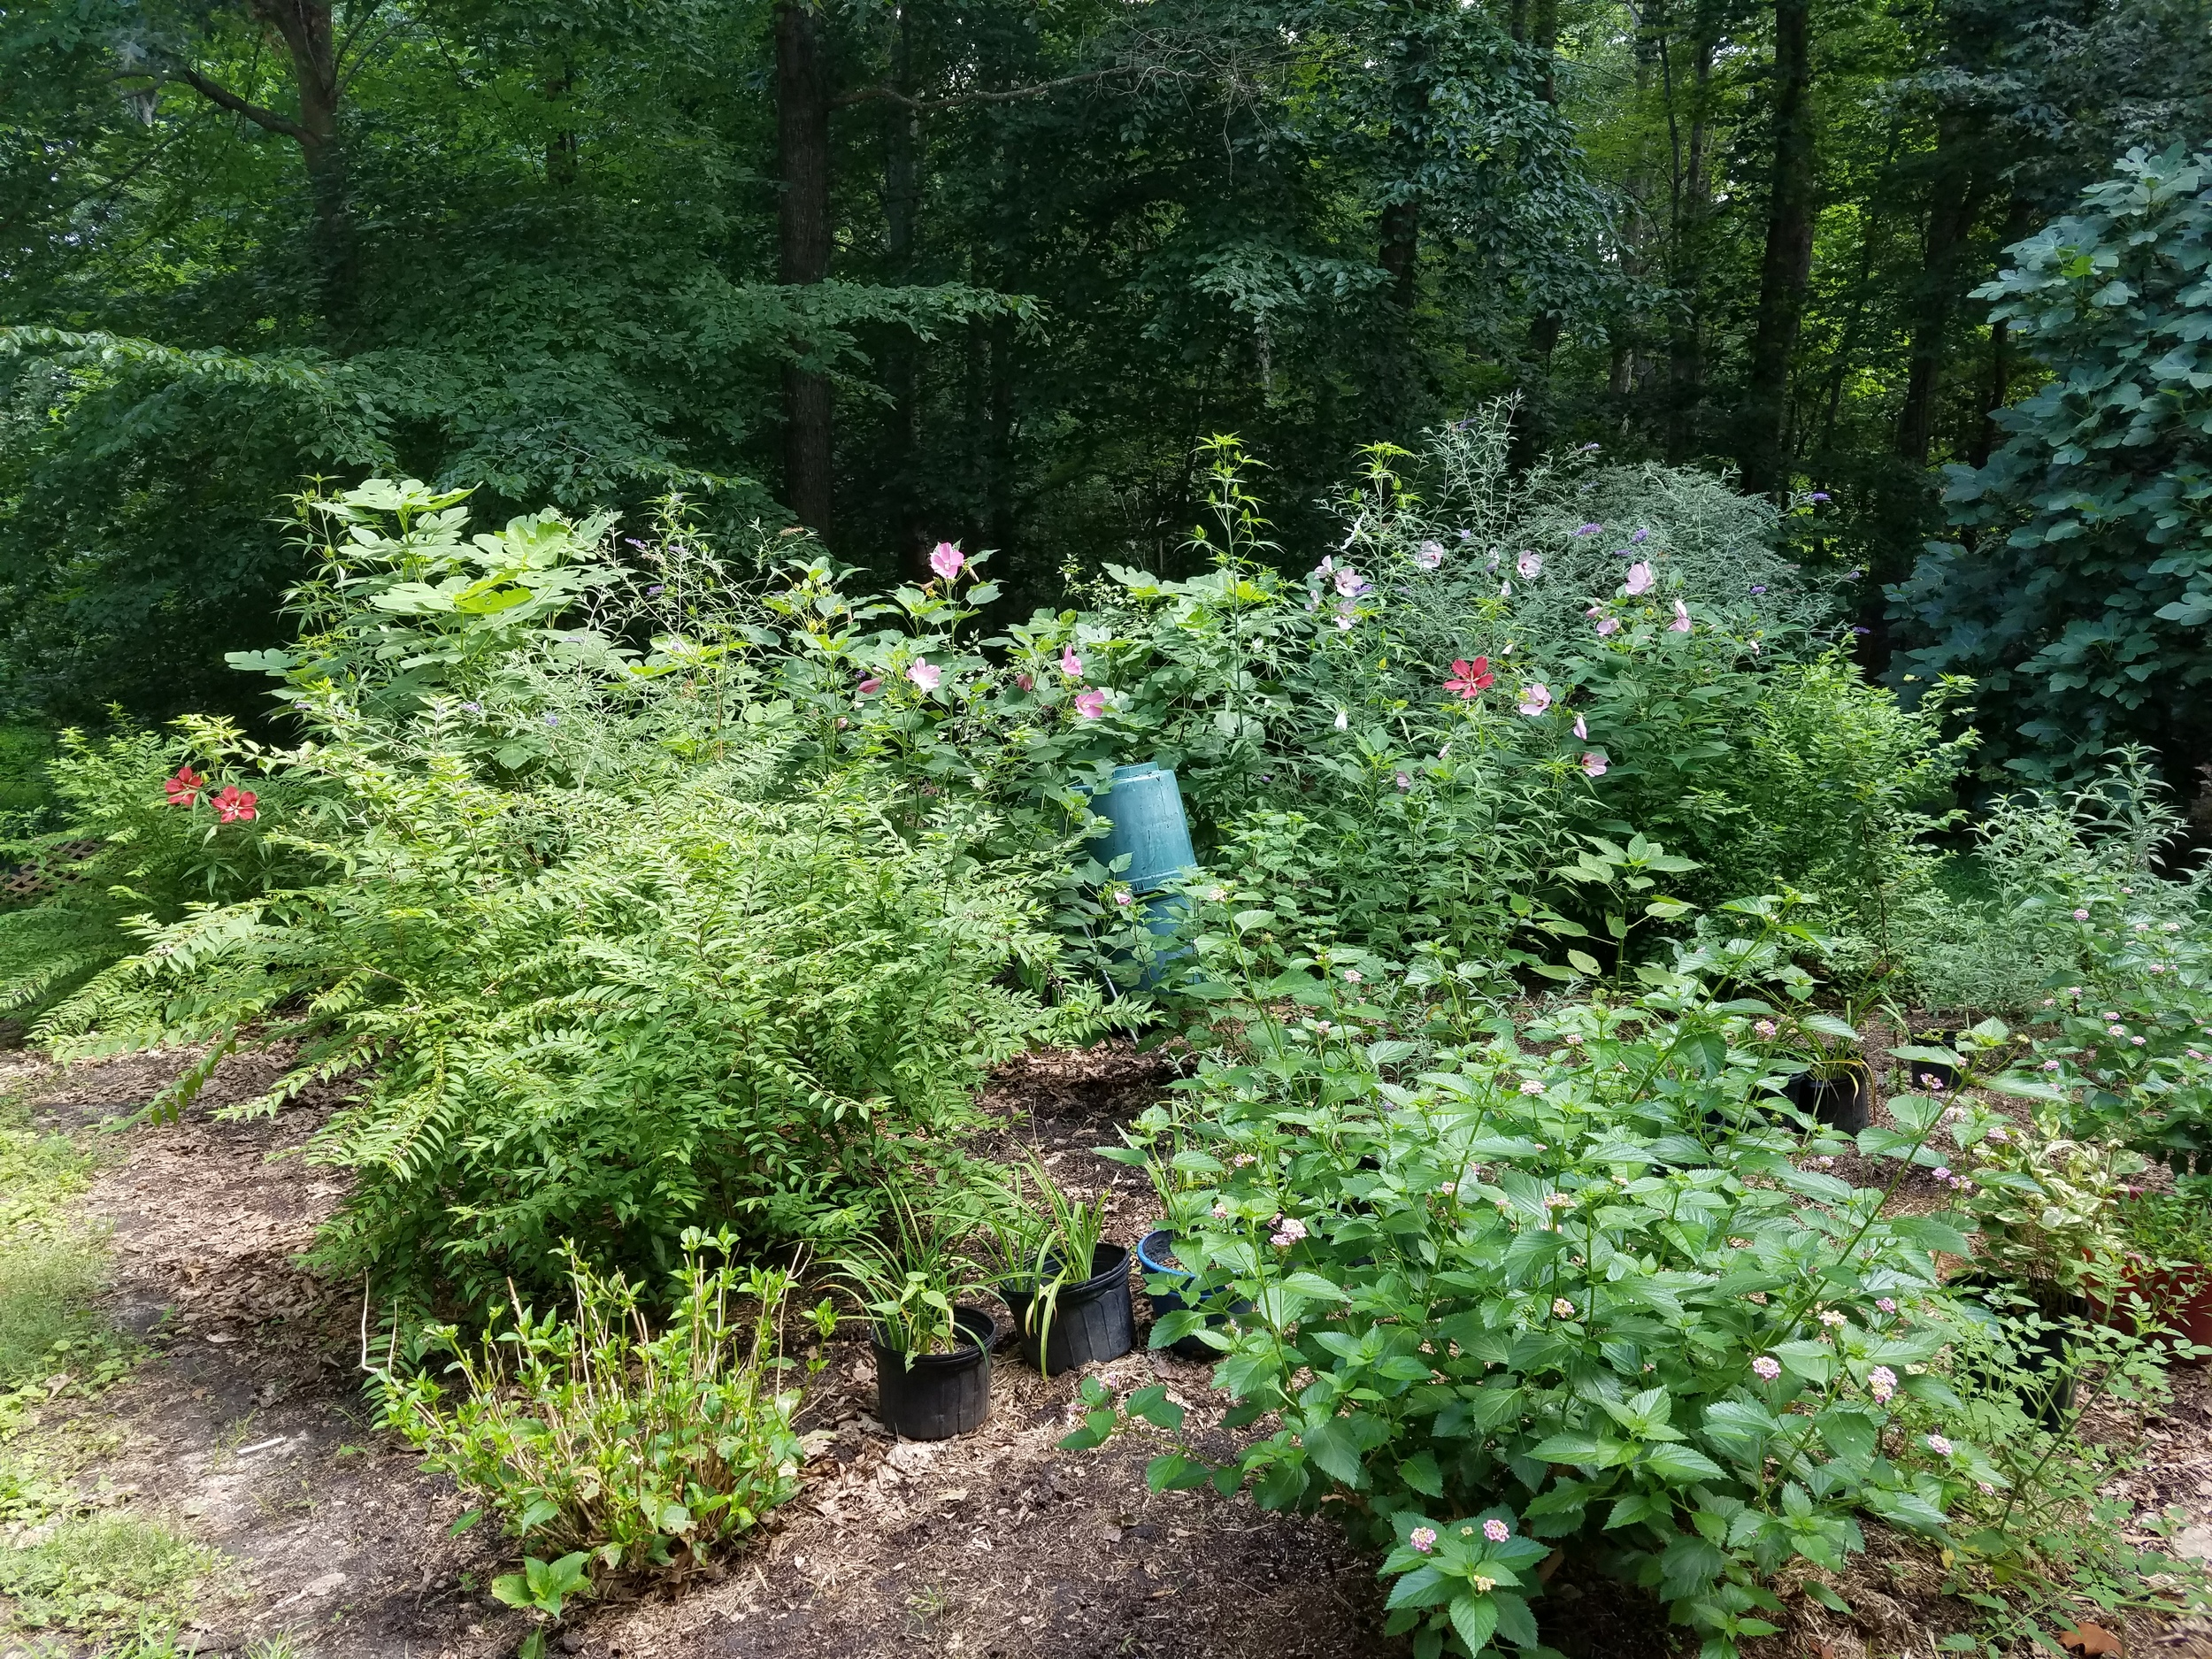 Our tumbler composter sits amidst a forest of hibiscus and buddleia